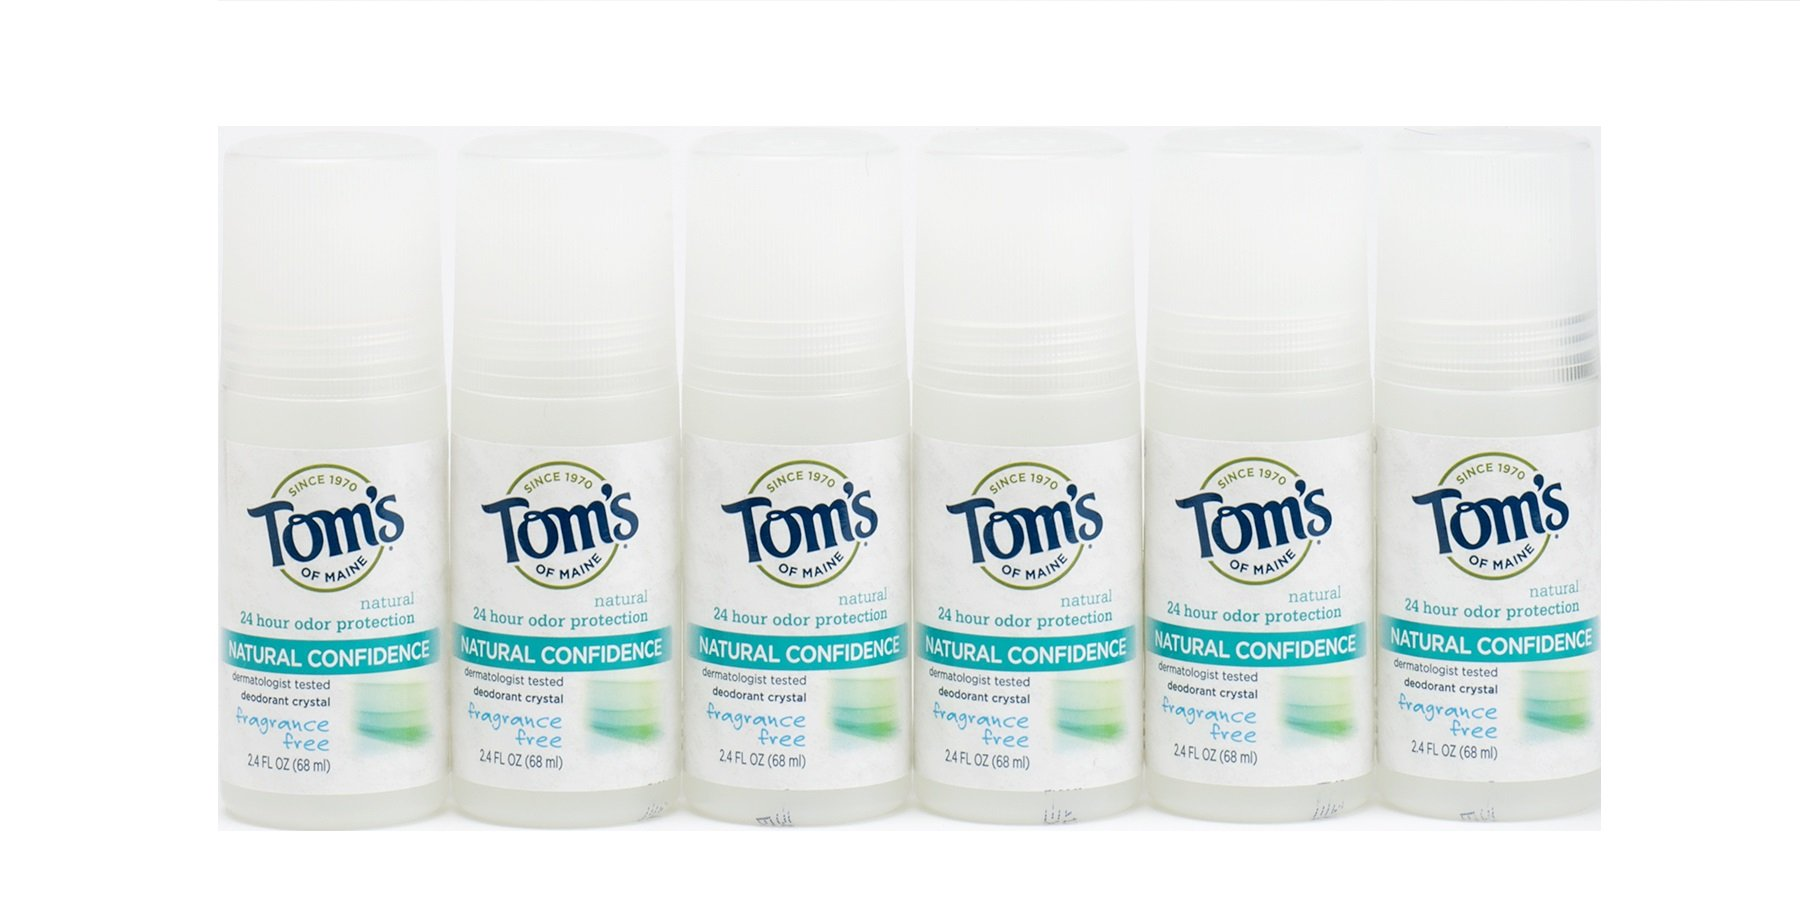 Tom's of Maine Fragrance Free Natural Confidence Roll-On Deodorant, 2.4 Ounce, Pack of 6